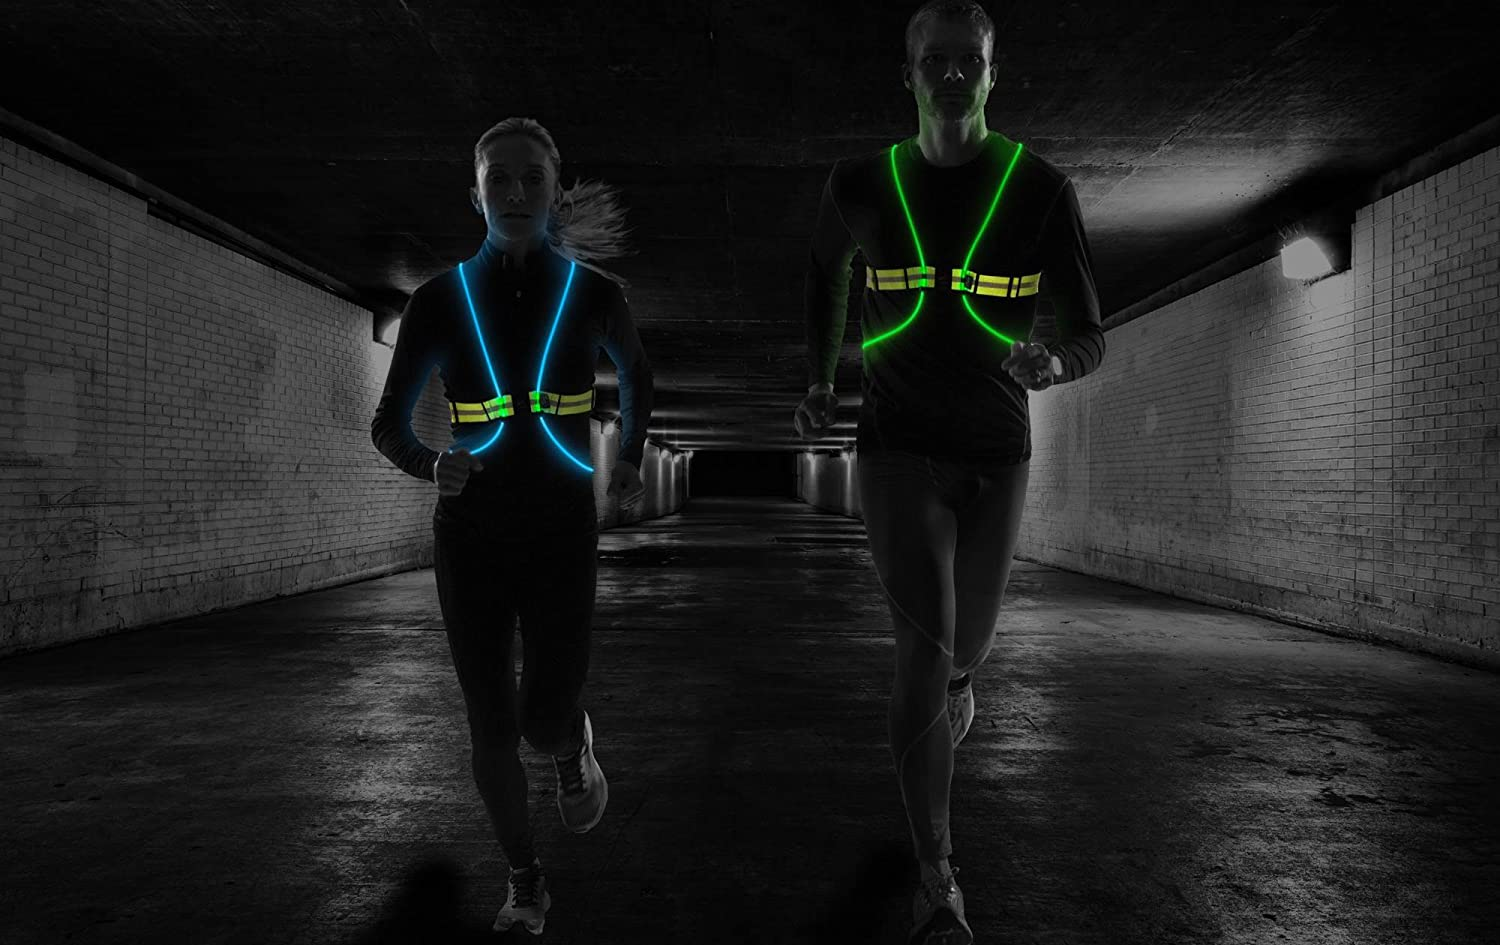 Revolutionary Illuminated /& Reflective Vest for Running or Cycling with Multicolored LED Fiber Optics Tracer360 Women /& Men, Adjustable, Lightweight, Weatherproof Gear for Jogging /& Biking